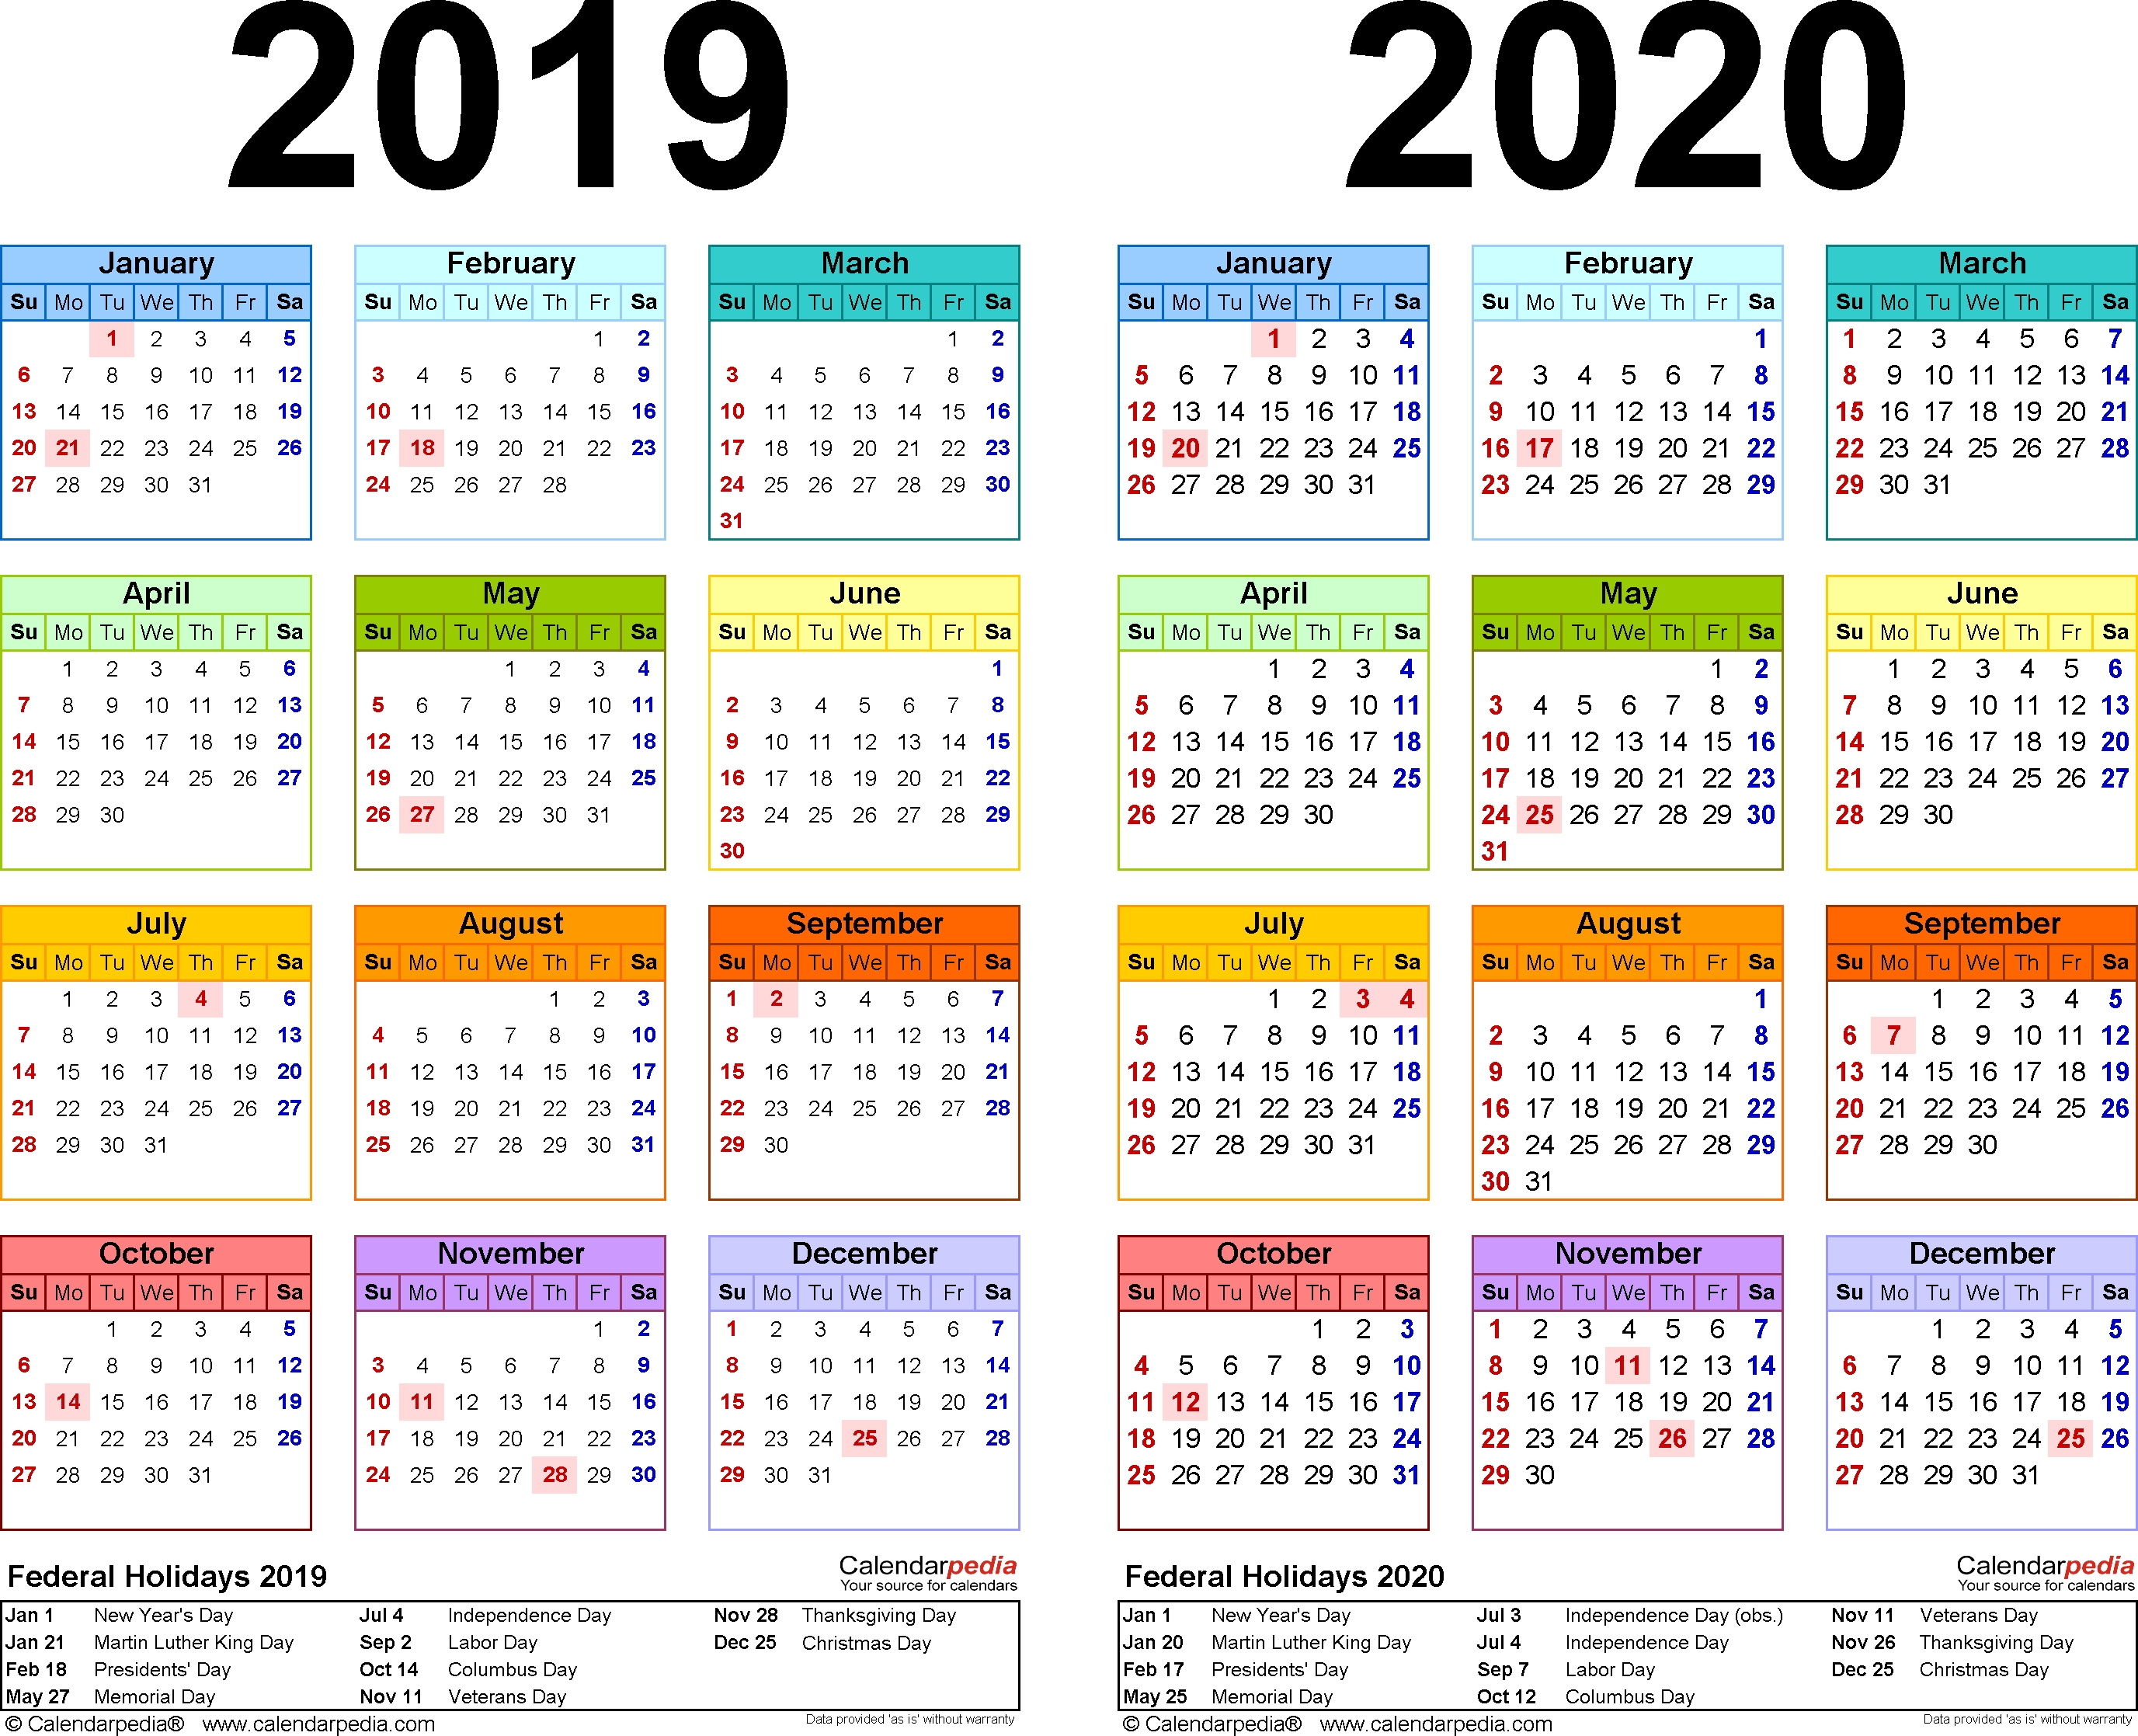 2019-2020 Calendar - Free Printable Two-Year Pdf Calendars regarding Year To View Calendar 2019/2020